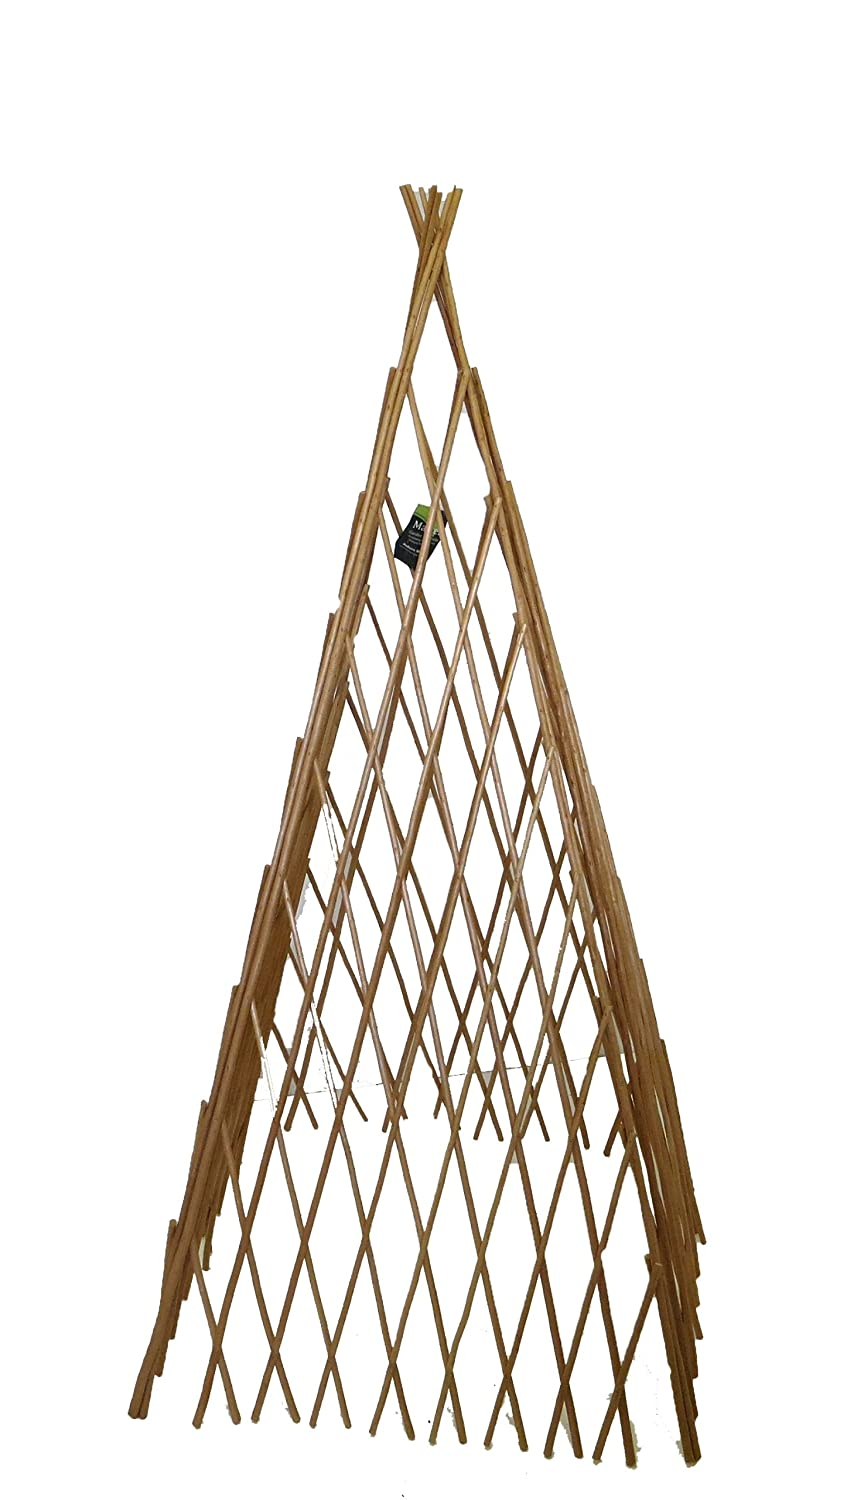 Master Garden Products Peeled Willow Expandable Teepee, 14 by 60-Inch